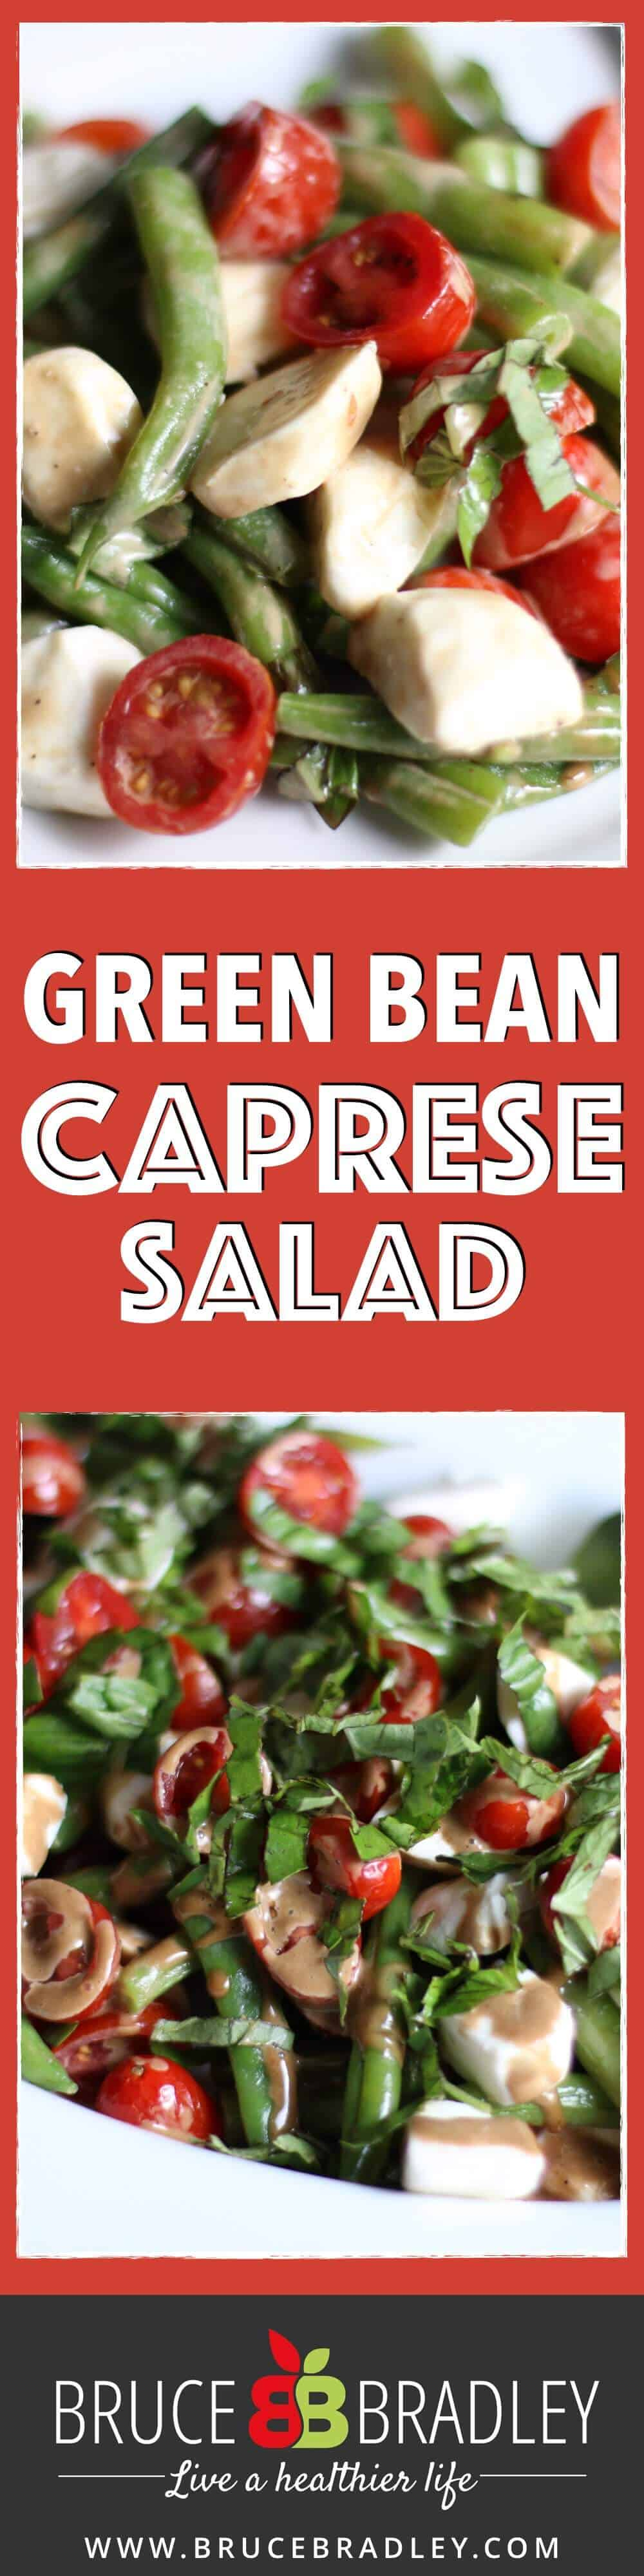 Green Bean Caprese Salad is a fantastic hot or cold salad made with green beans, tomatoes, fresh mozzarella, basil, and a creamy balsamic vinaigrette!